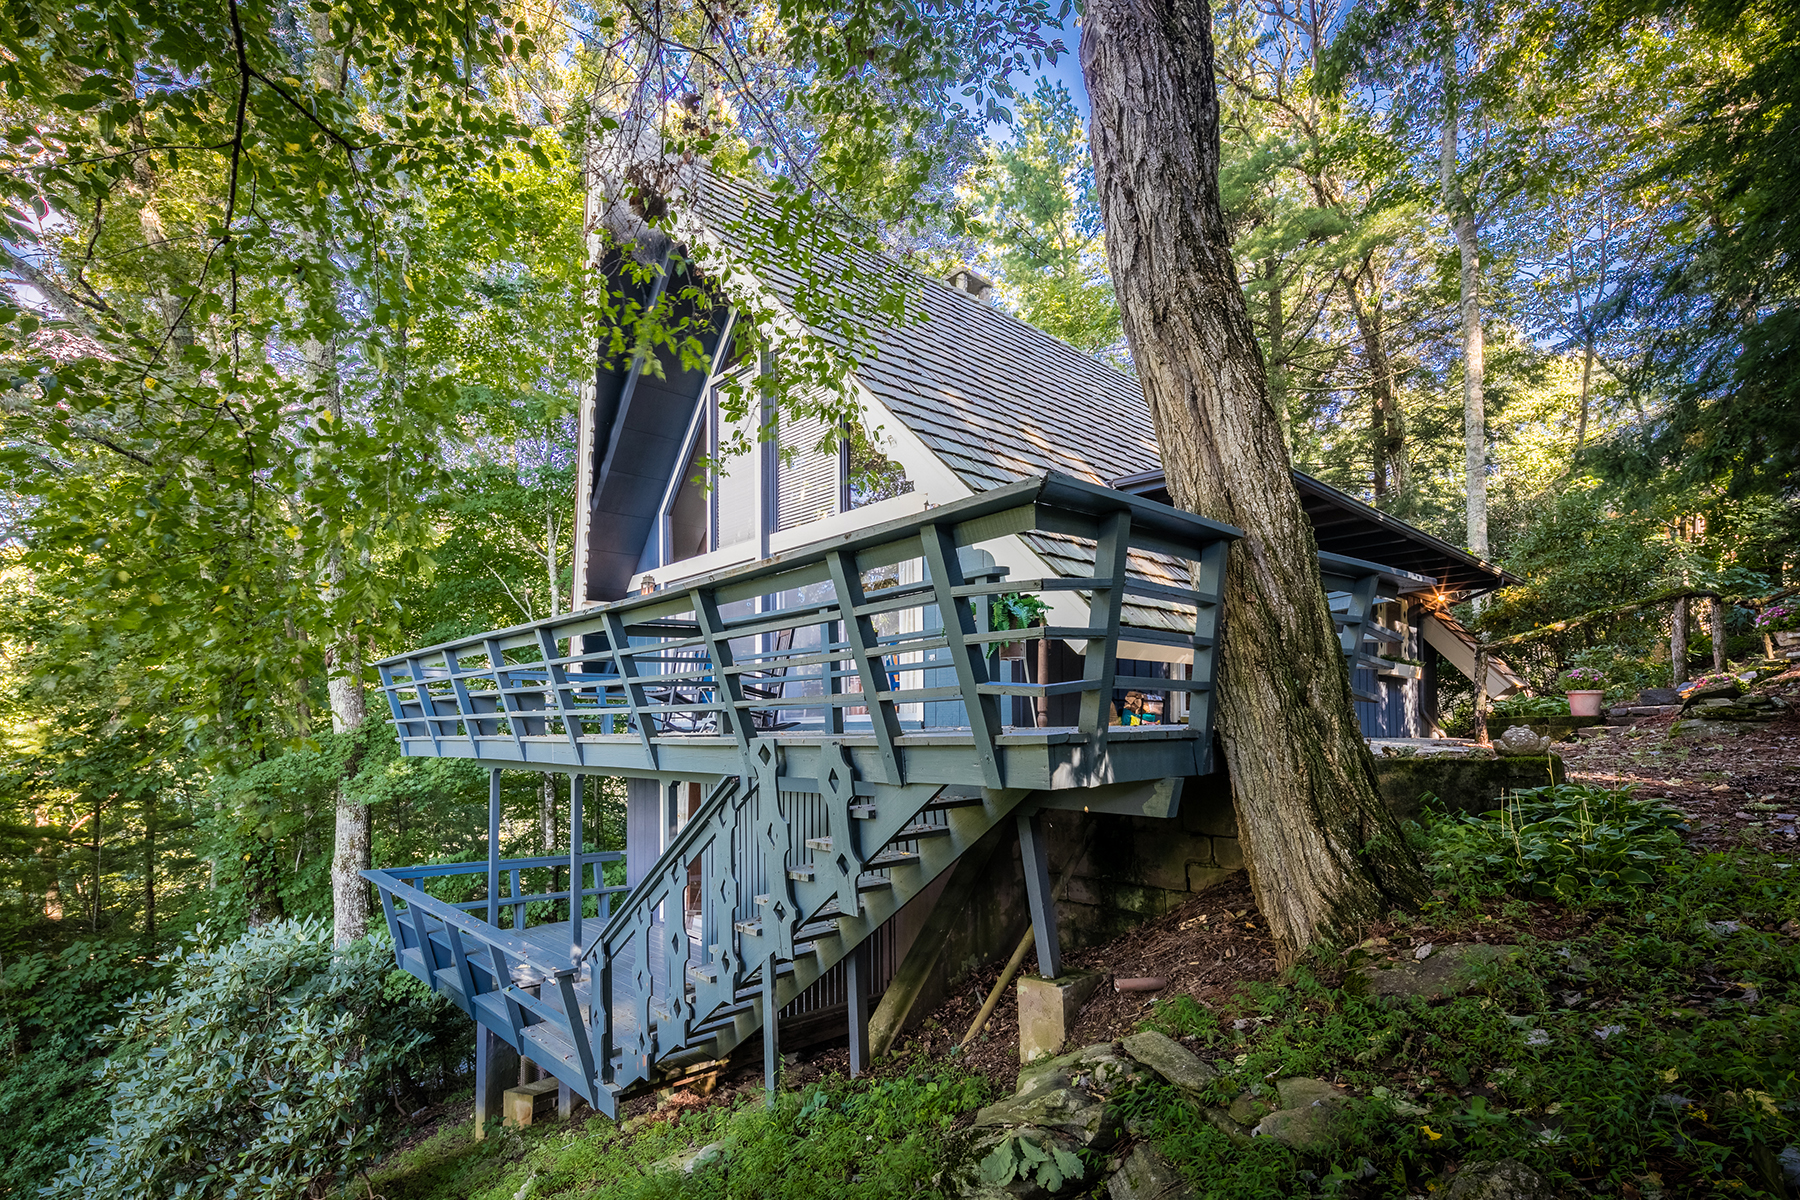 Single Family Home for Sale at HOUND EARS 132 Aspen, Boone, North Carolina, 28607 United States